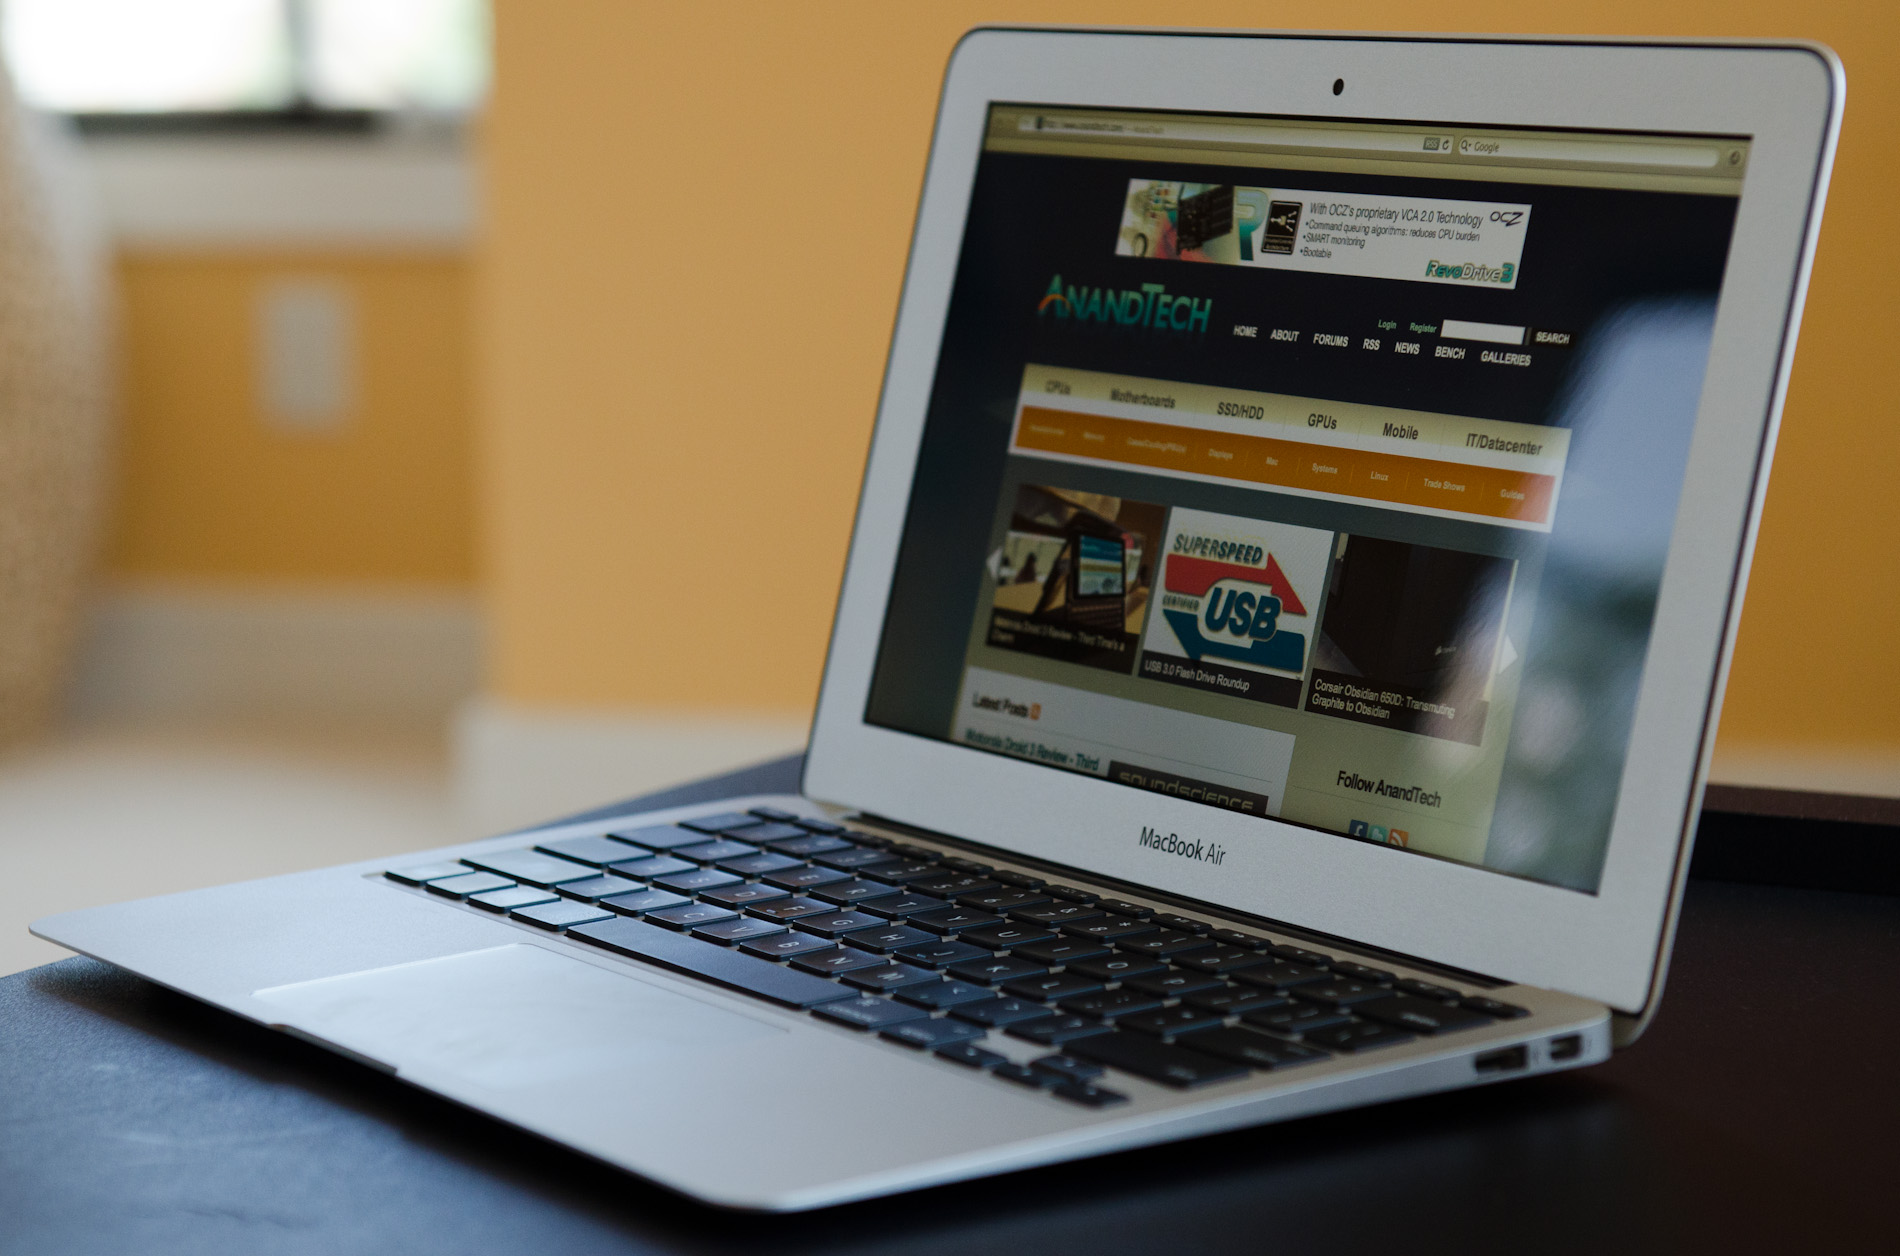 macbook air i7